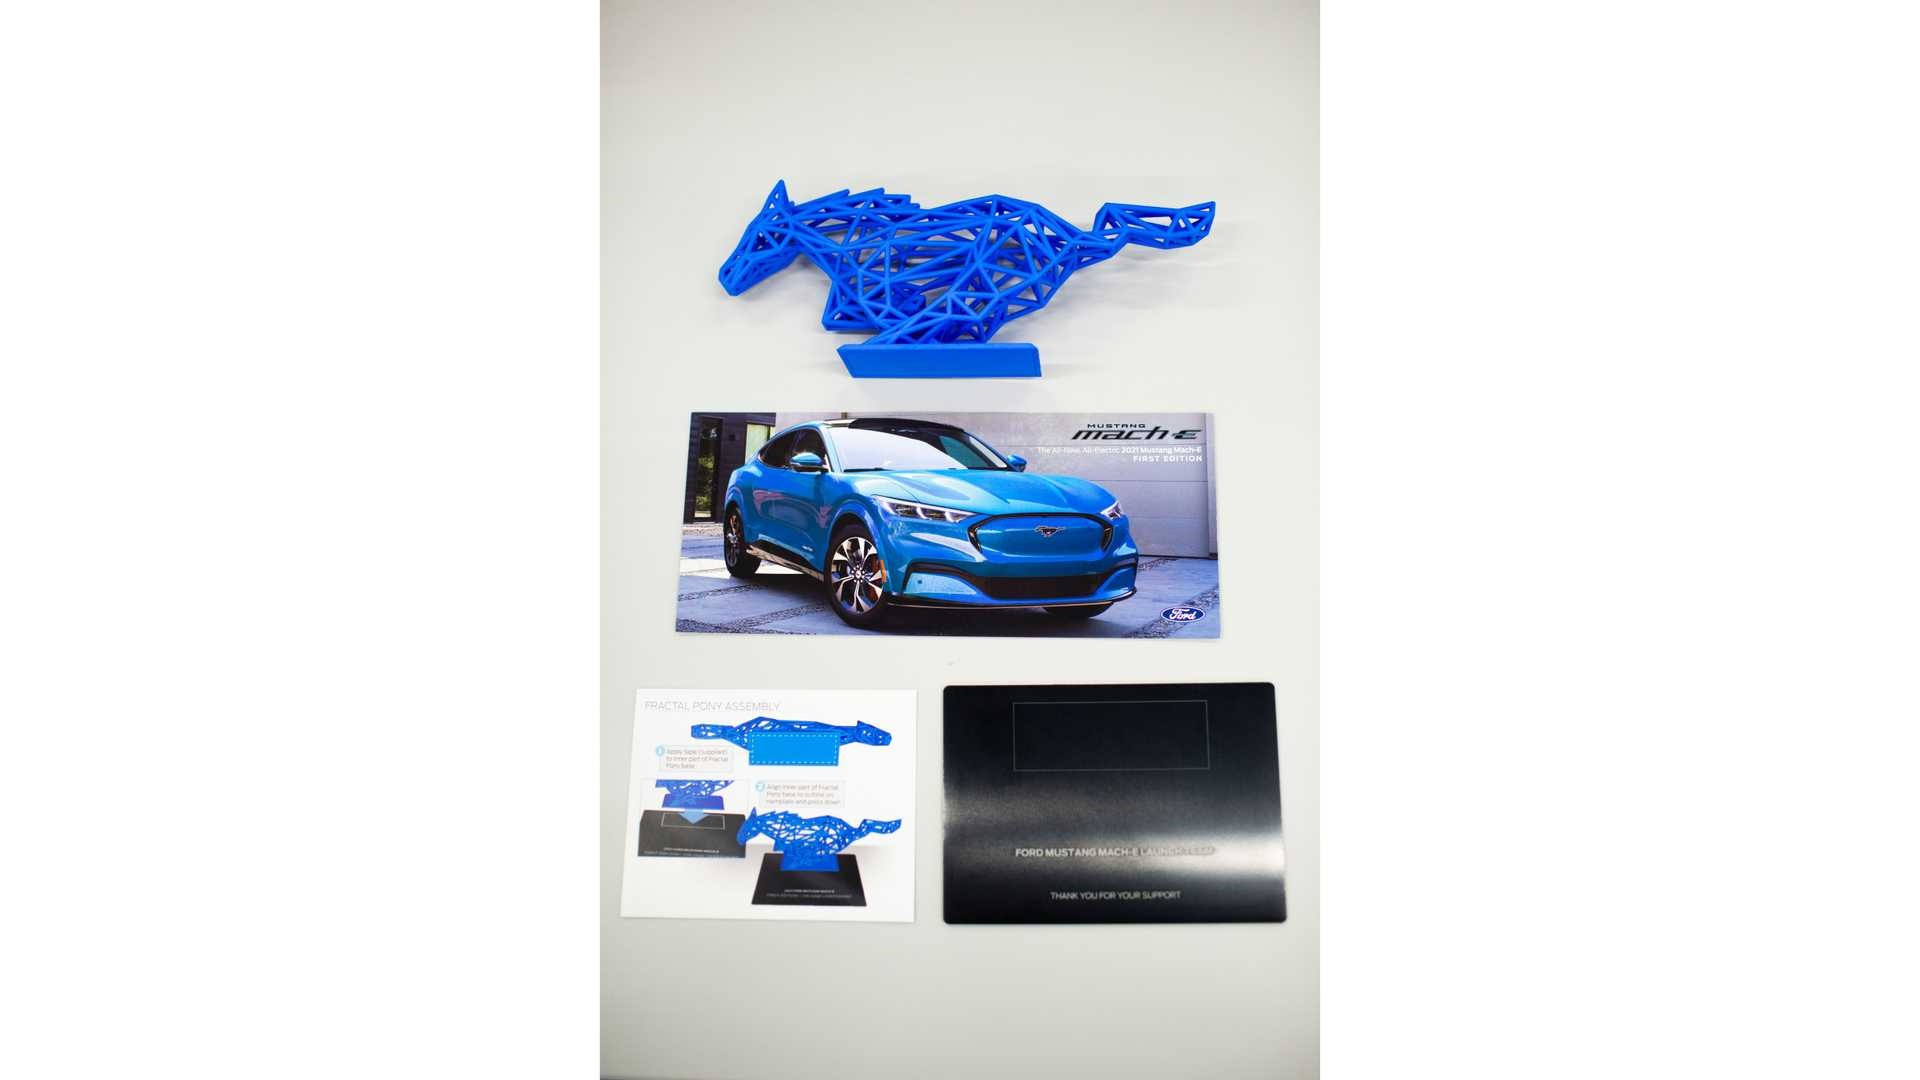 Ford_Mustang_Mach-E_3D-Printed_Sculpture-0005